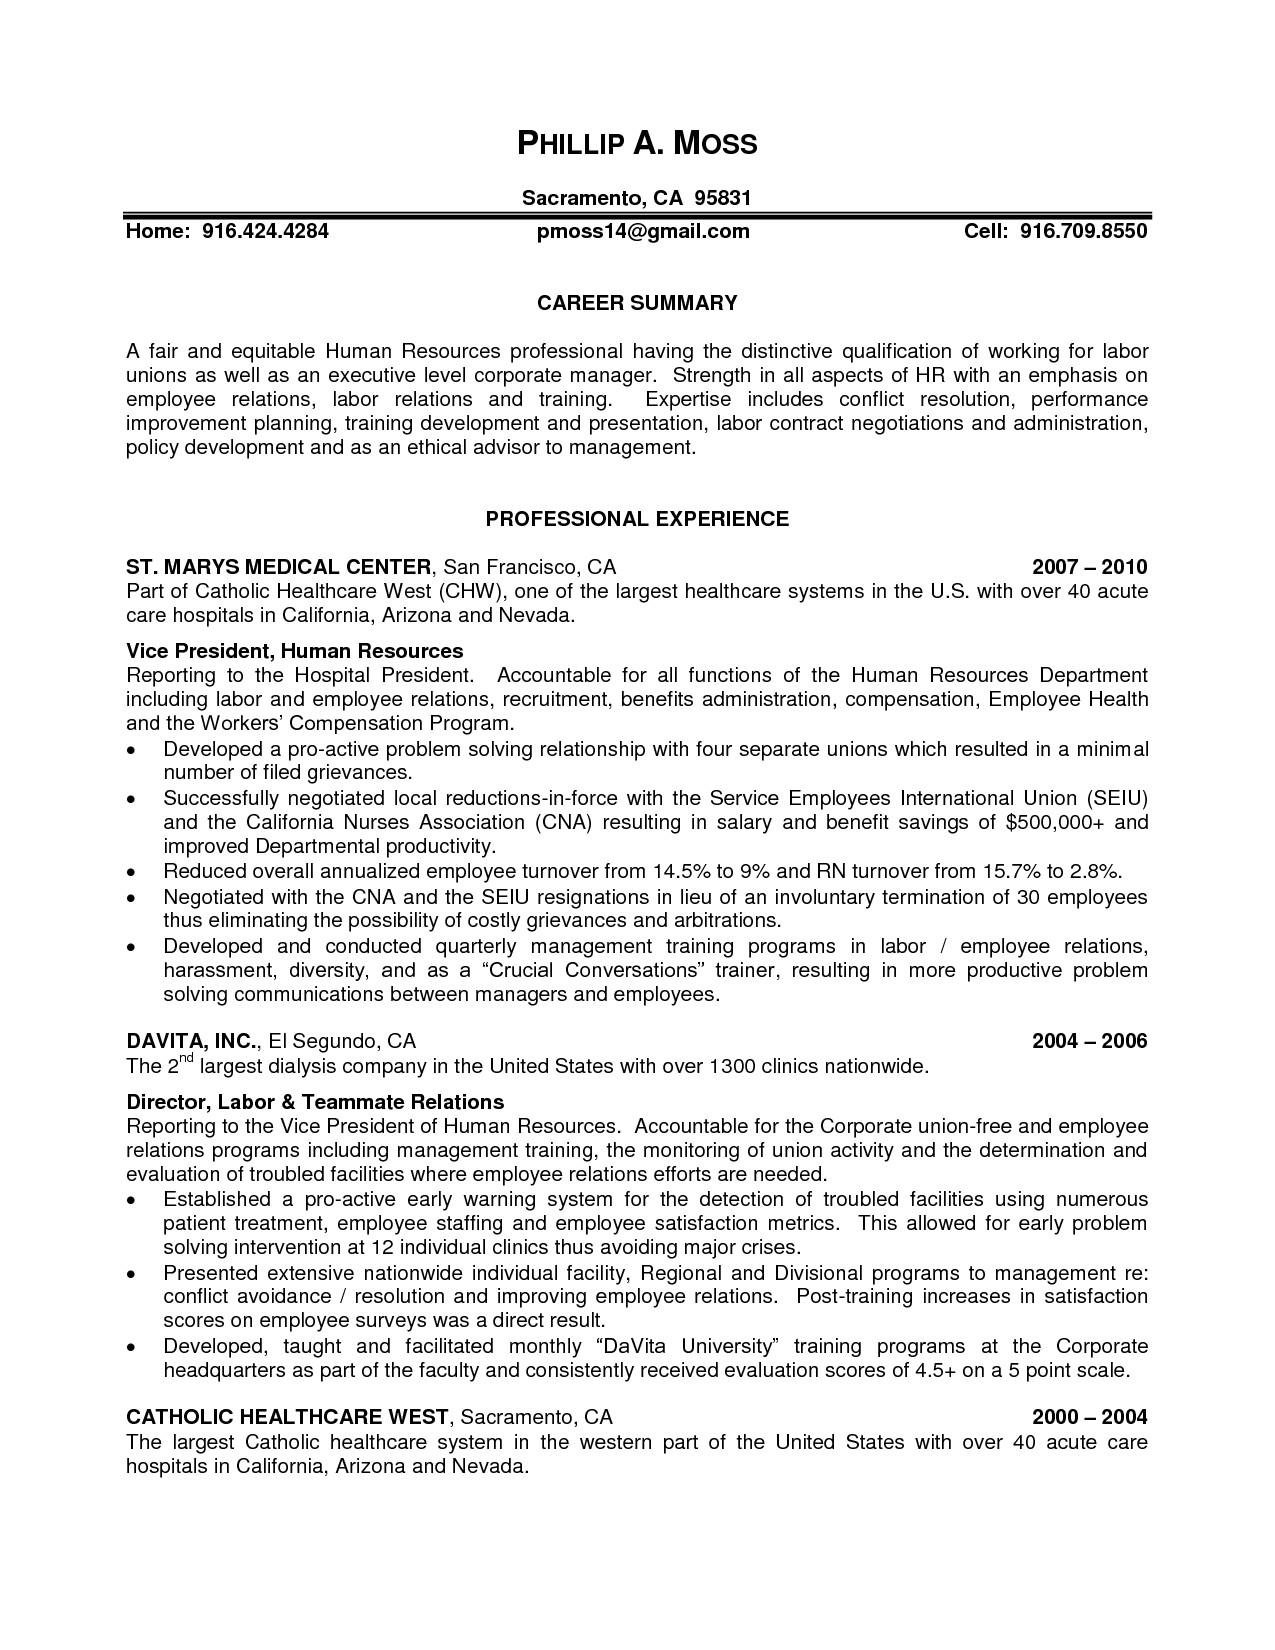 Professional organizer Resume Sample Professional organizer Resume Sample Resume Ideas